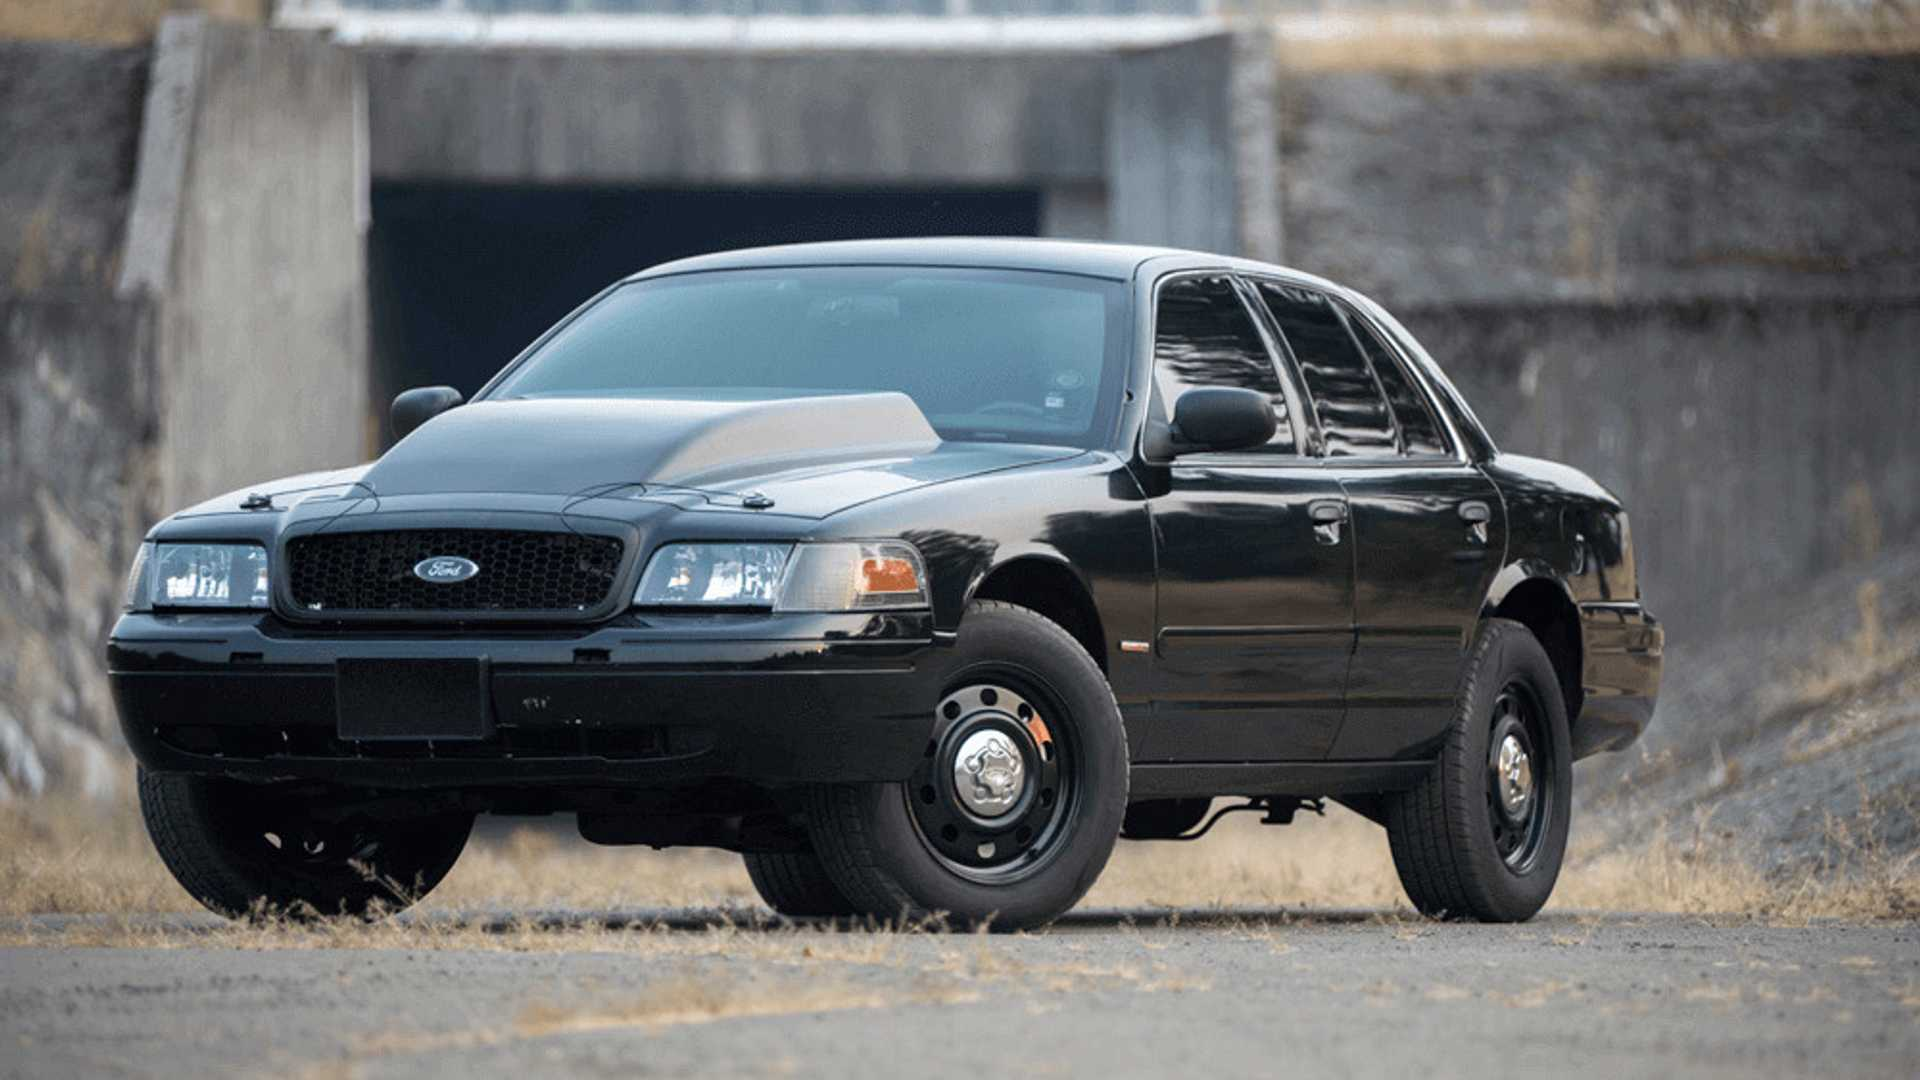 How To Read Tire Size >> Power Stroke-Swapped Crown Vic Is A 12-Second Cruiser ...